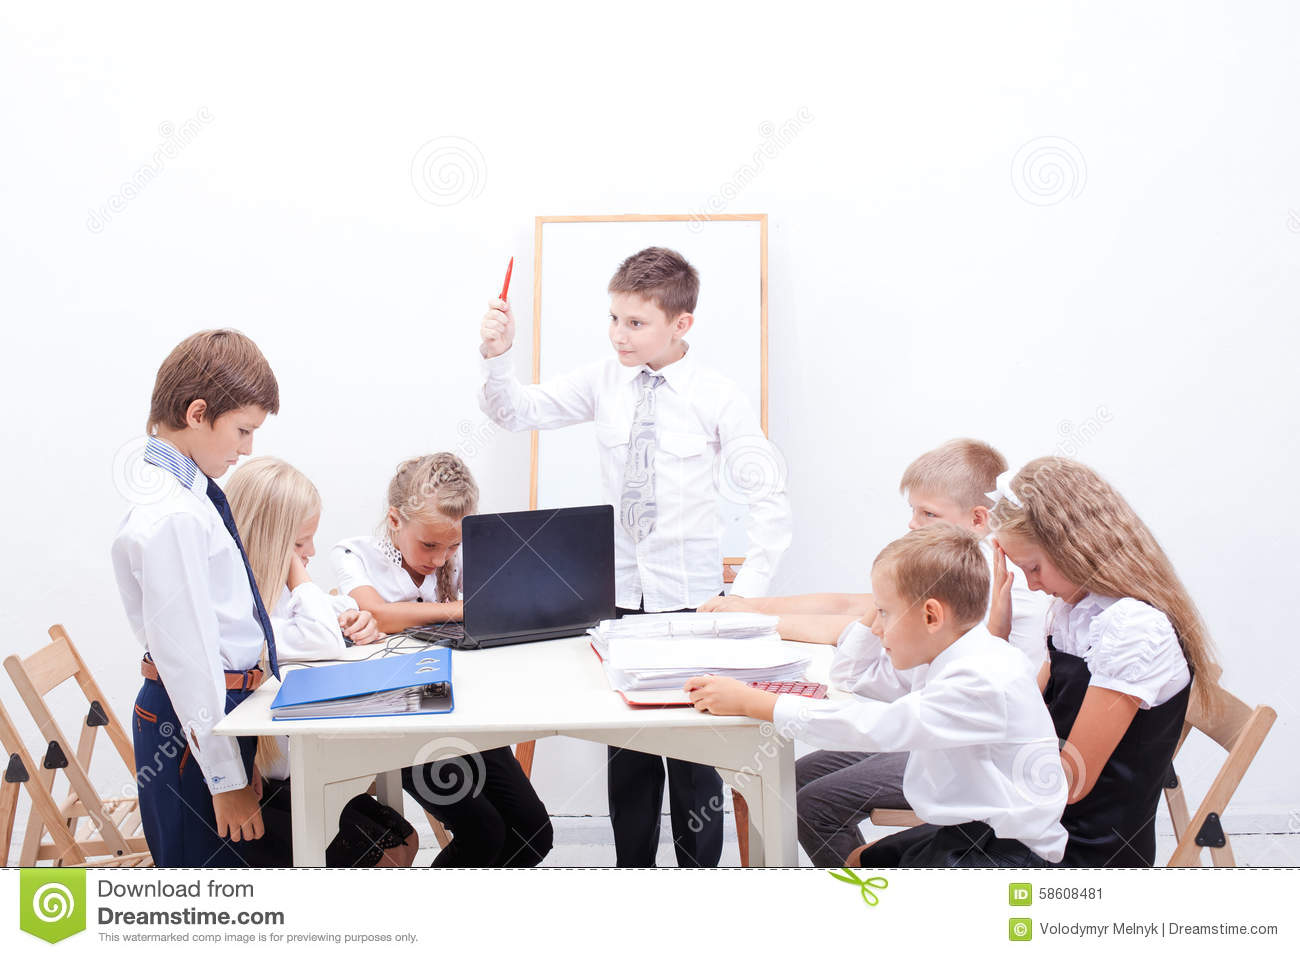 The group of teenagers sitting in a business